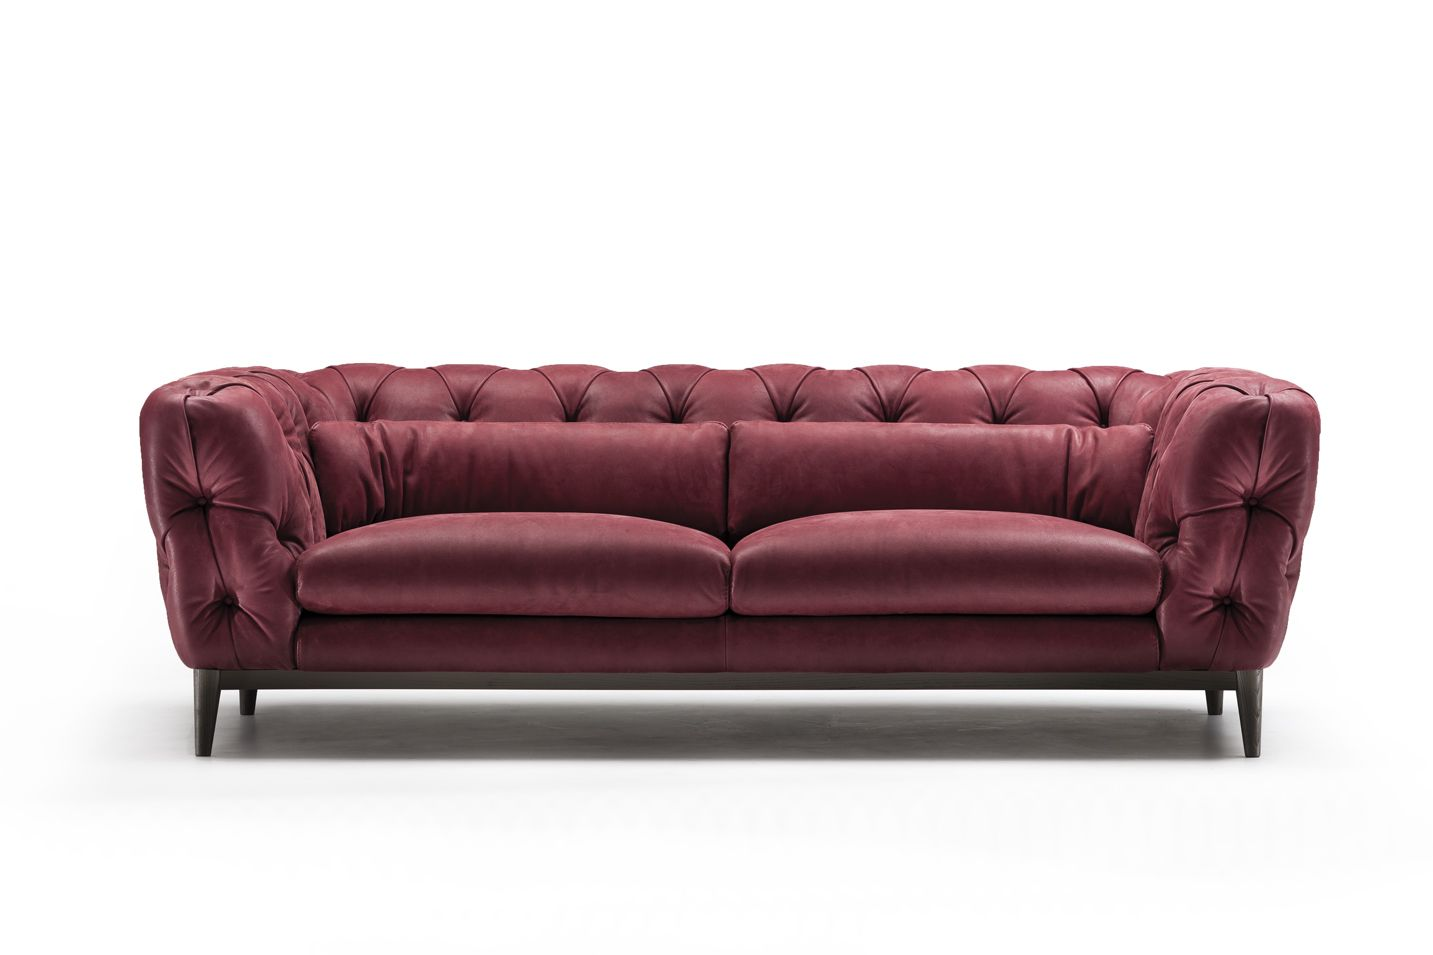 Andros Sofa By Nicoline Home Decor Sofa Chesterfield Sofa Ve Furniture